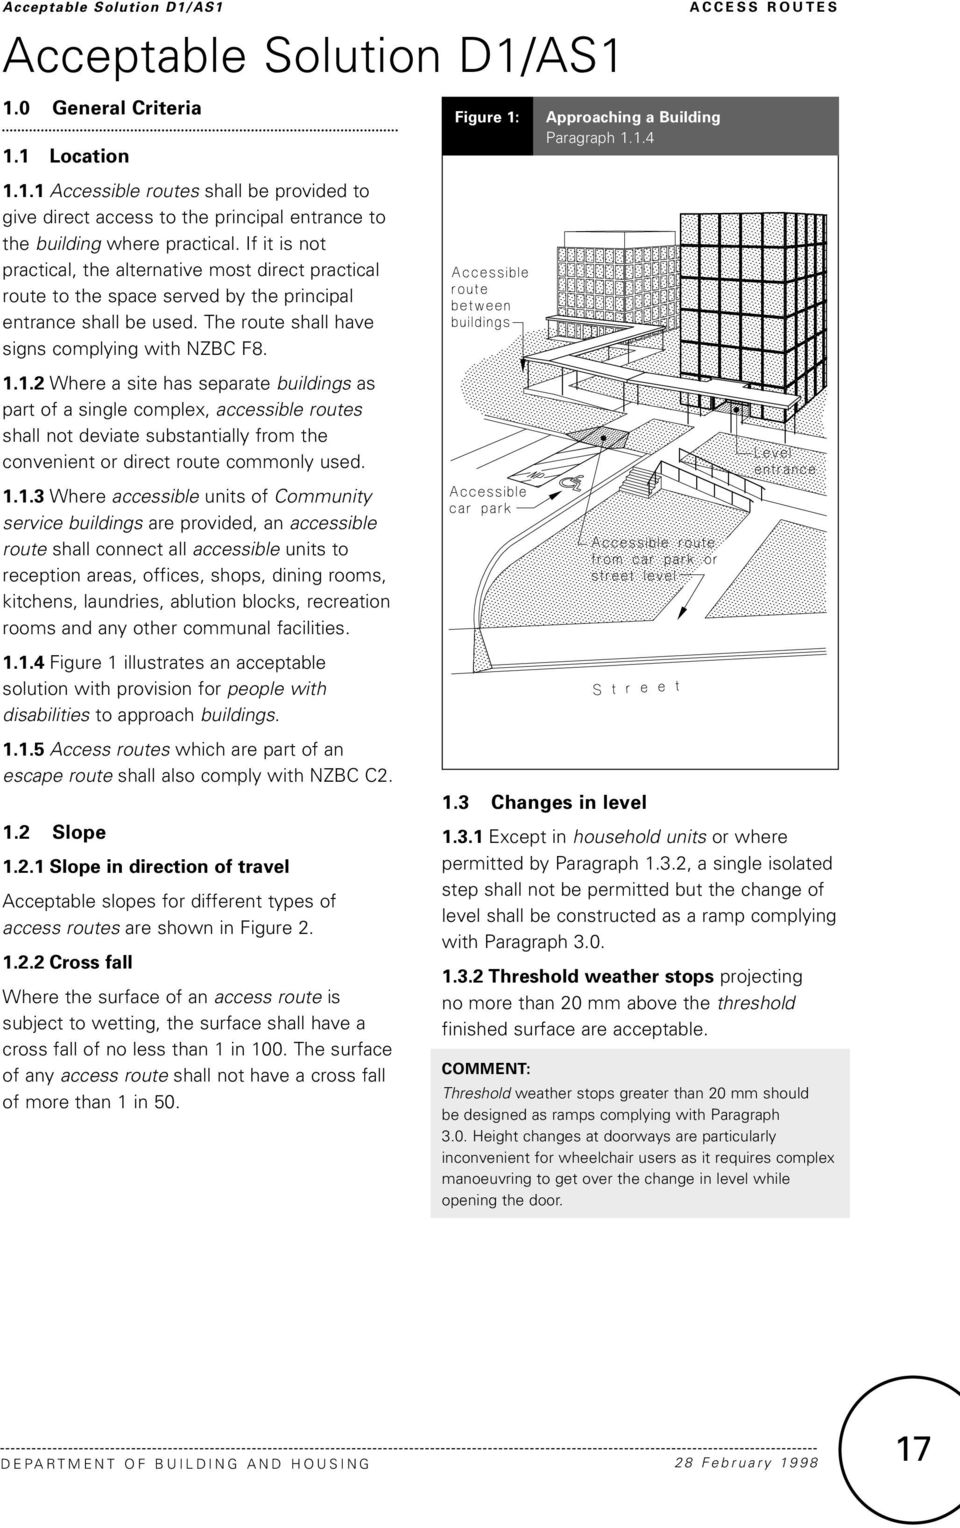 1.2 Where a site has separate buildings as part of a single complex, accessible routes shall not deviate substantially from the convenient or direct route commonly used. 1.1.3 Where accessible units